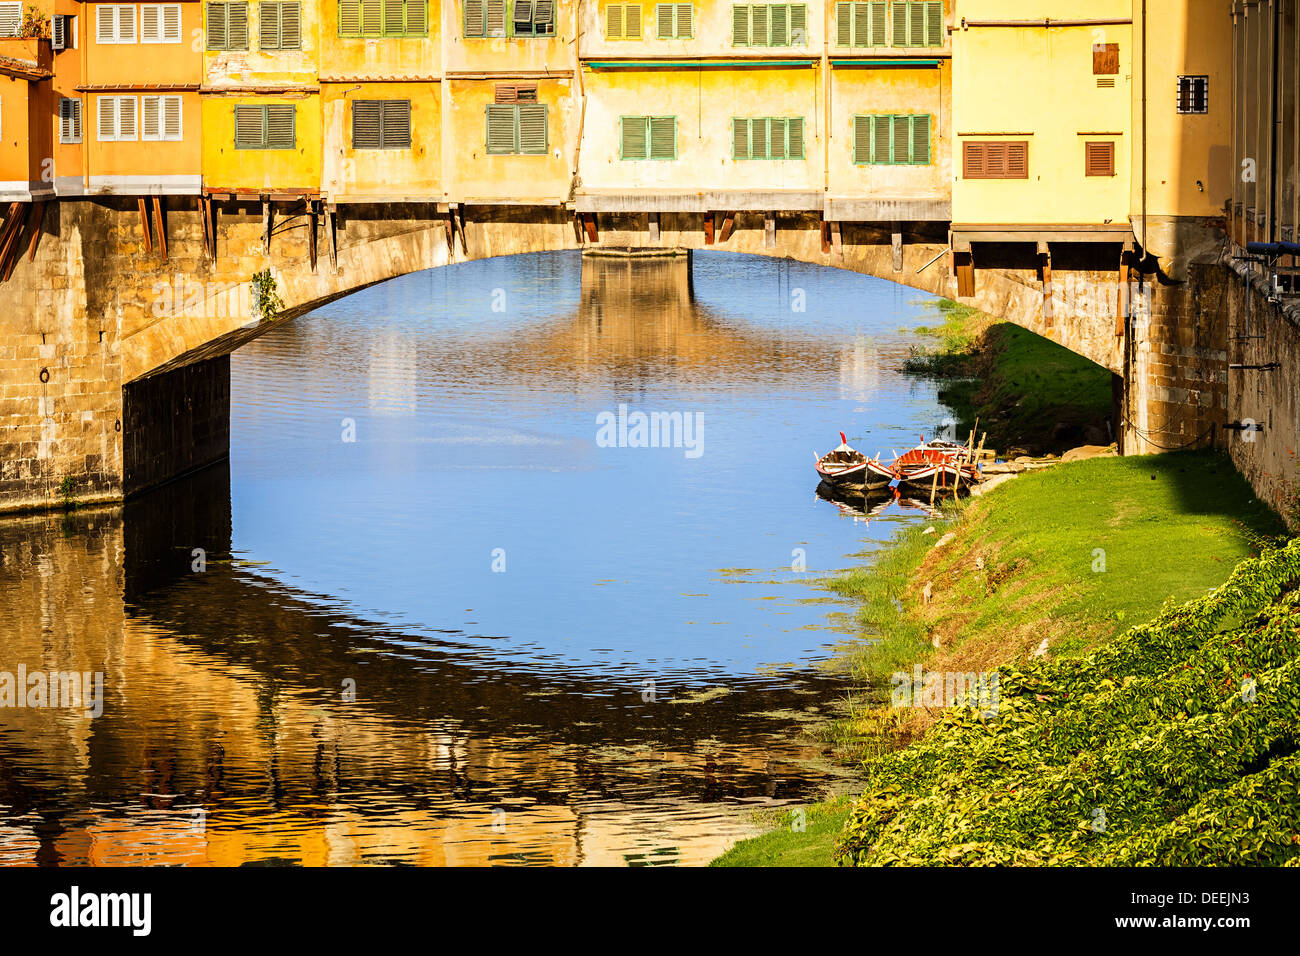 Ponte Vecchio in Florence - Stock Image